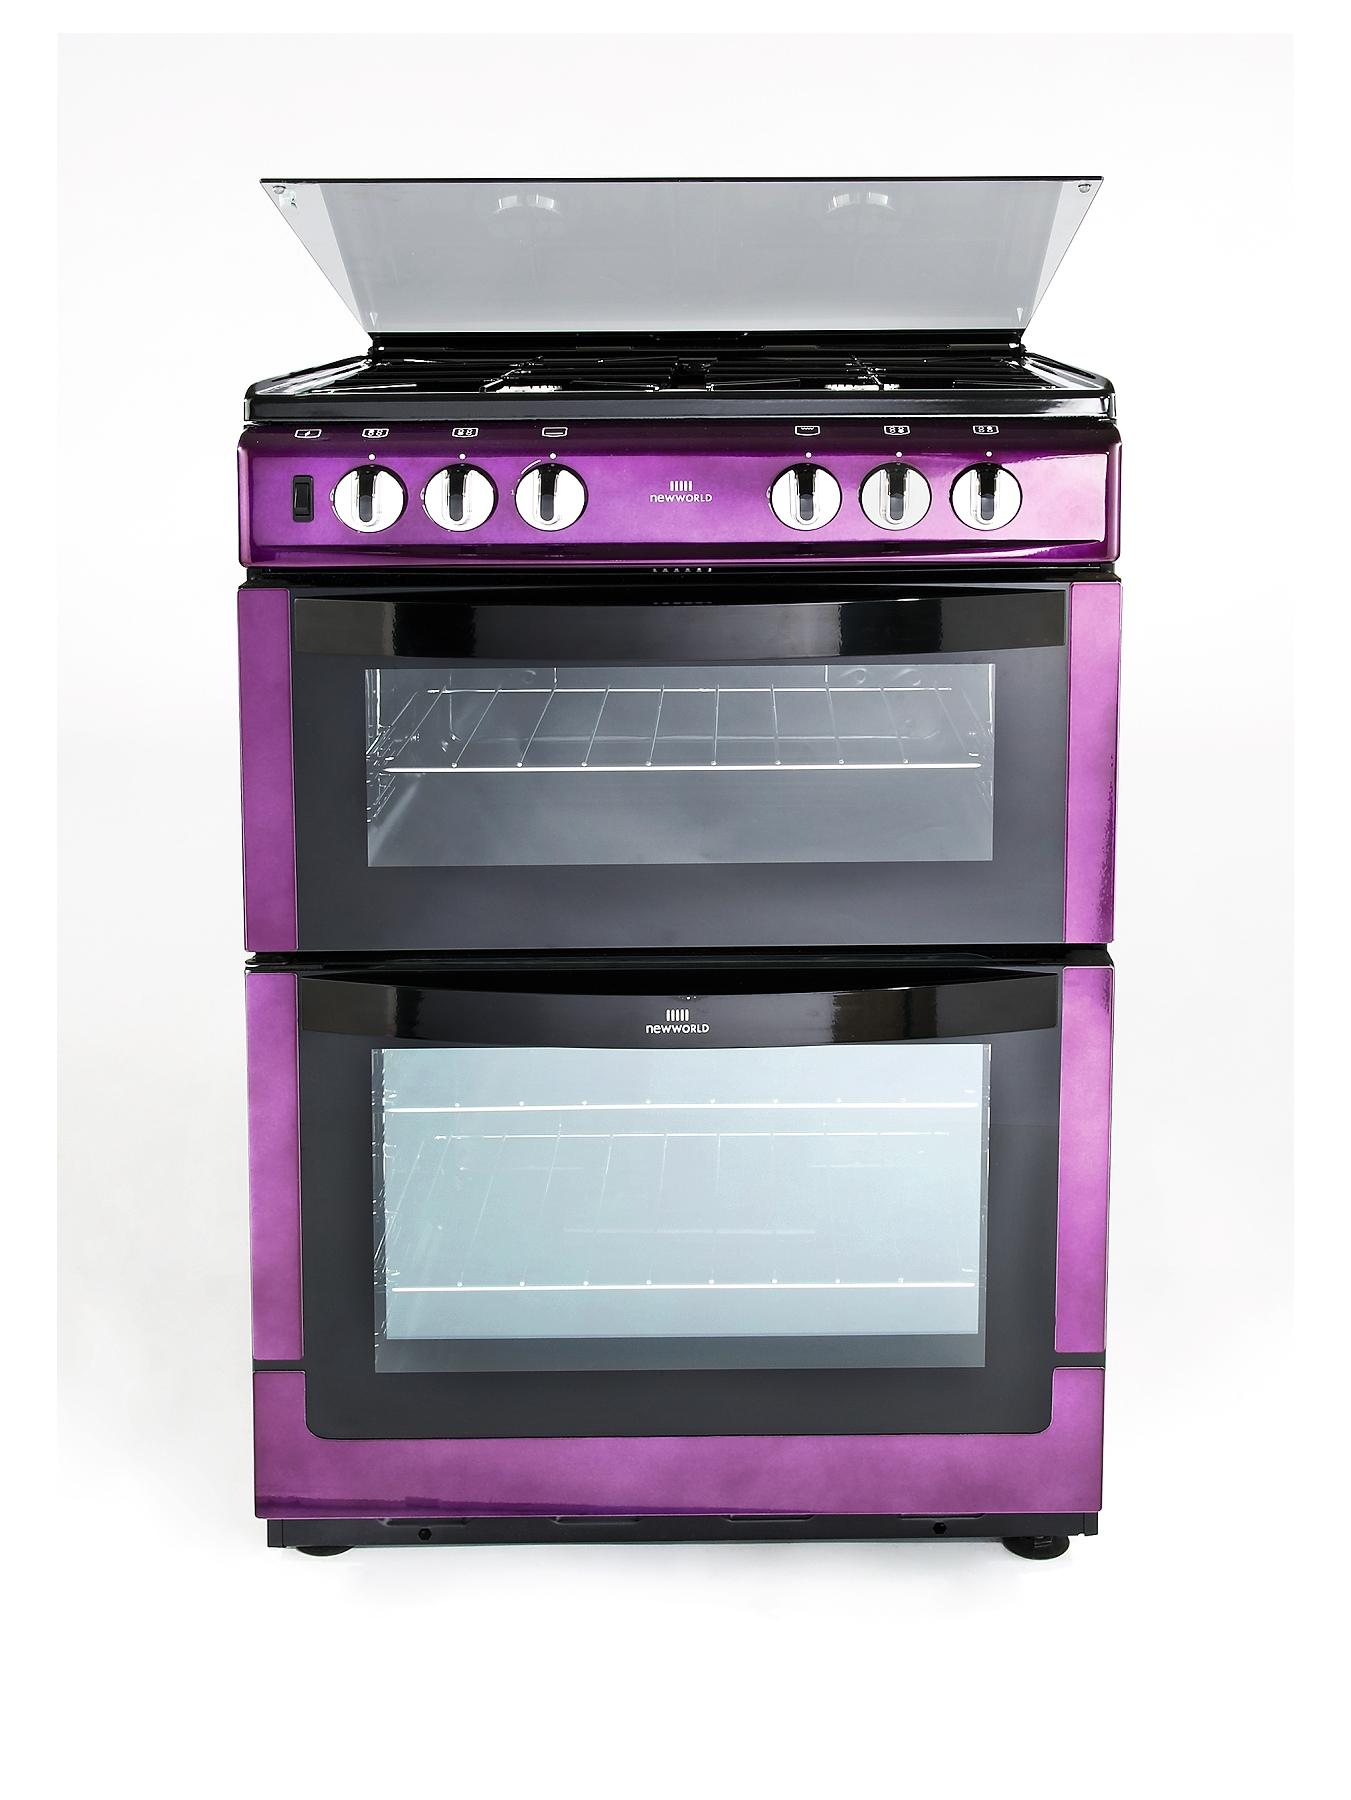 60GDOL 60cm Double Oven Gas Cooker - Purple